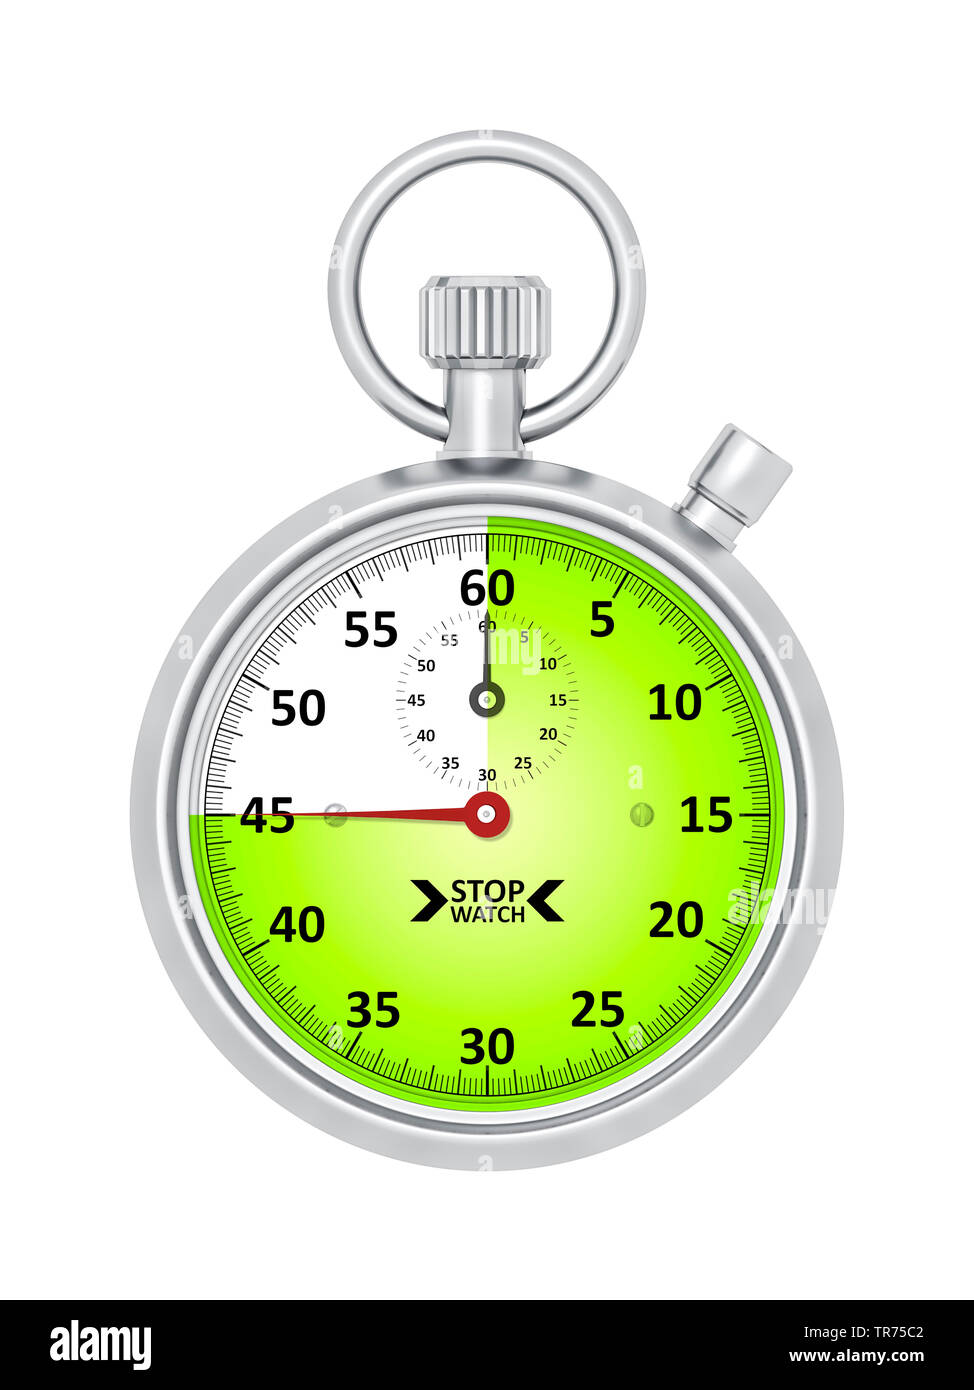 silver stopclock, cutout, 45 seconds - Stock Image